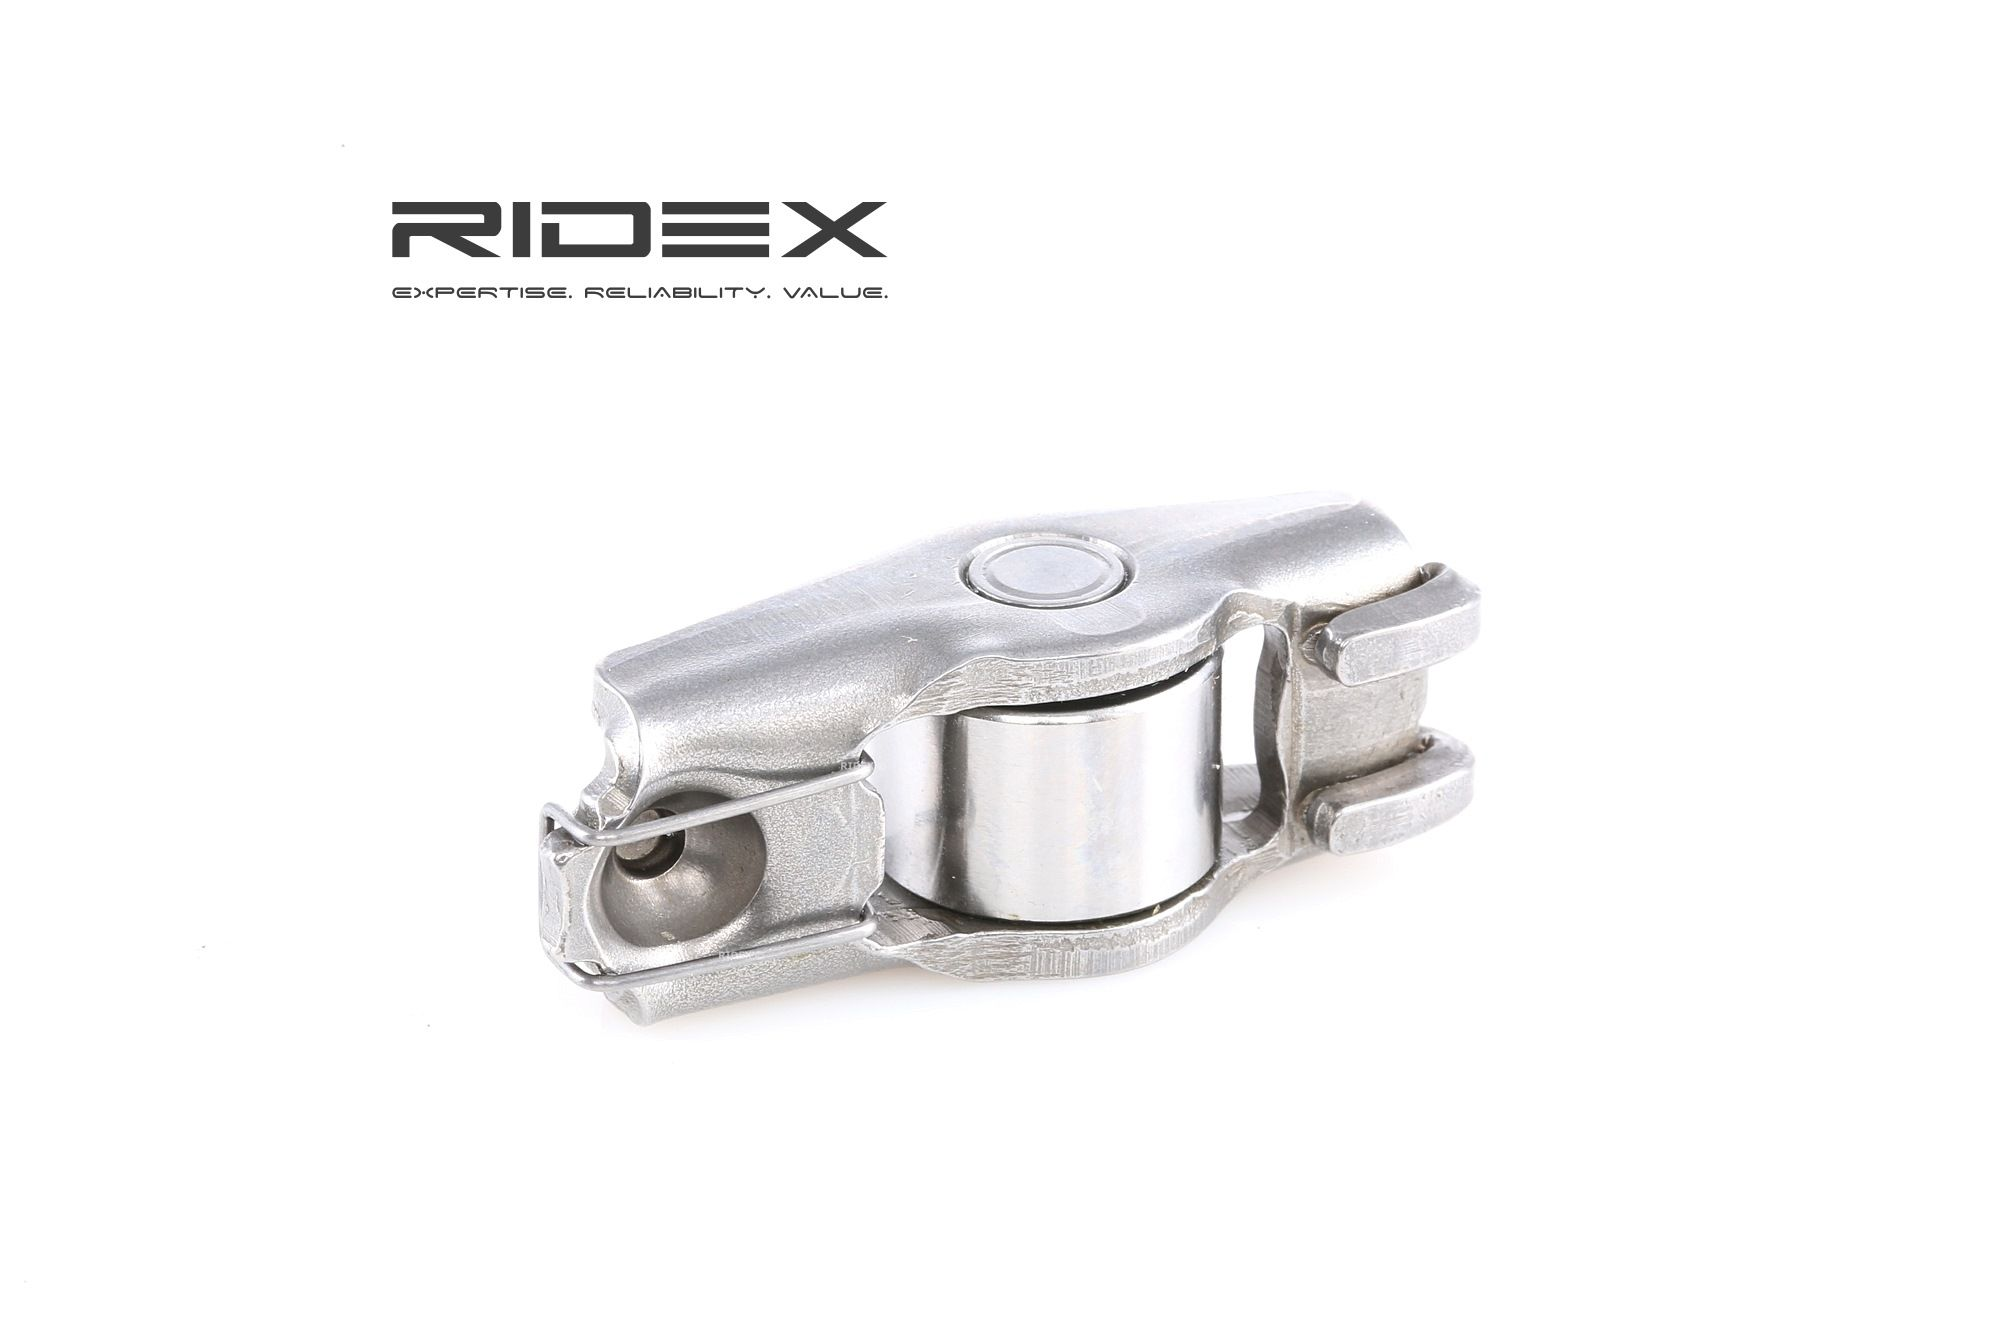 ridex Sleephefboom VW,SKODA,SEAT 561R0033 030109411,030109411B,030109417B Sleephefboom, motorregeling 030109417D,030109411,030109411B,030109417B